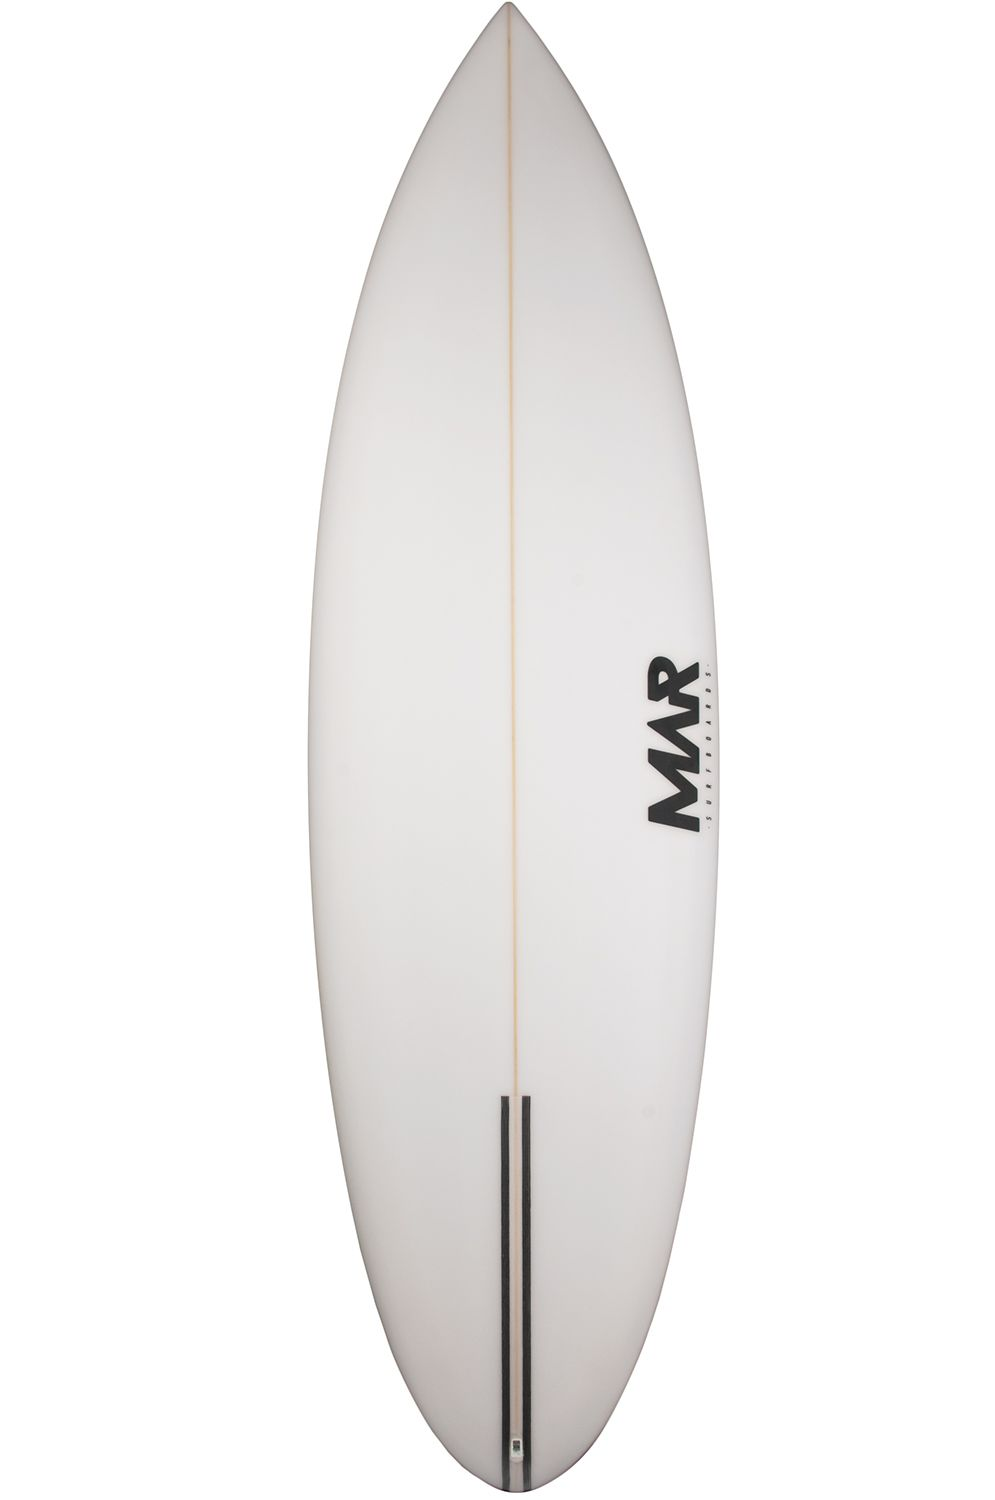 Mar Surf Board 6'4 PARROT PU Round Tail - White FCS II Multisystem 6ft4